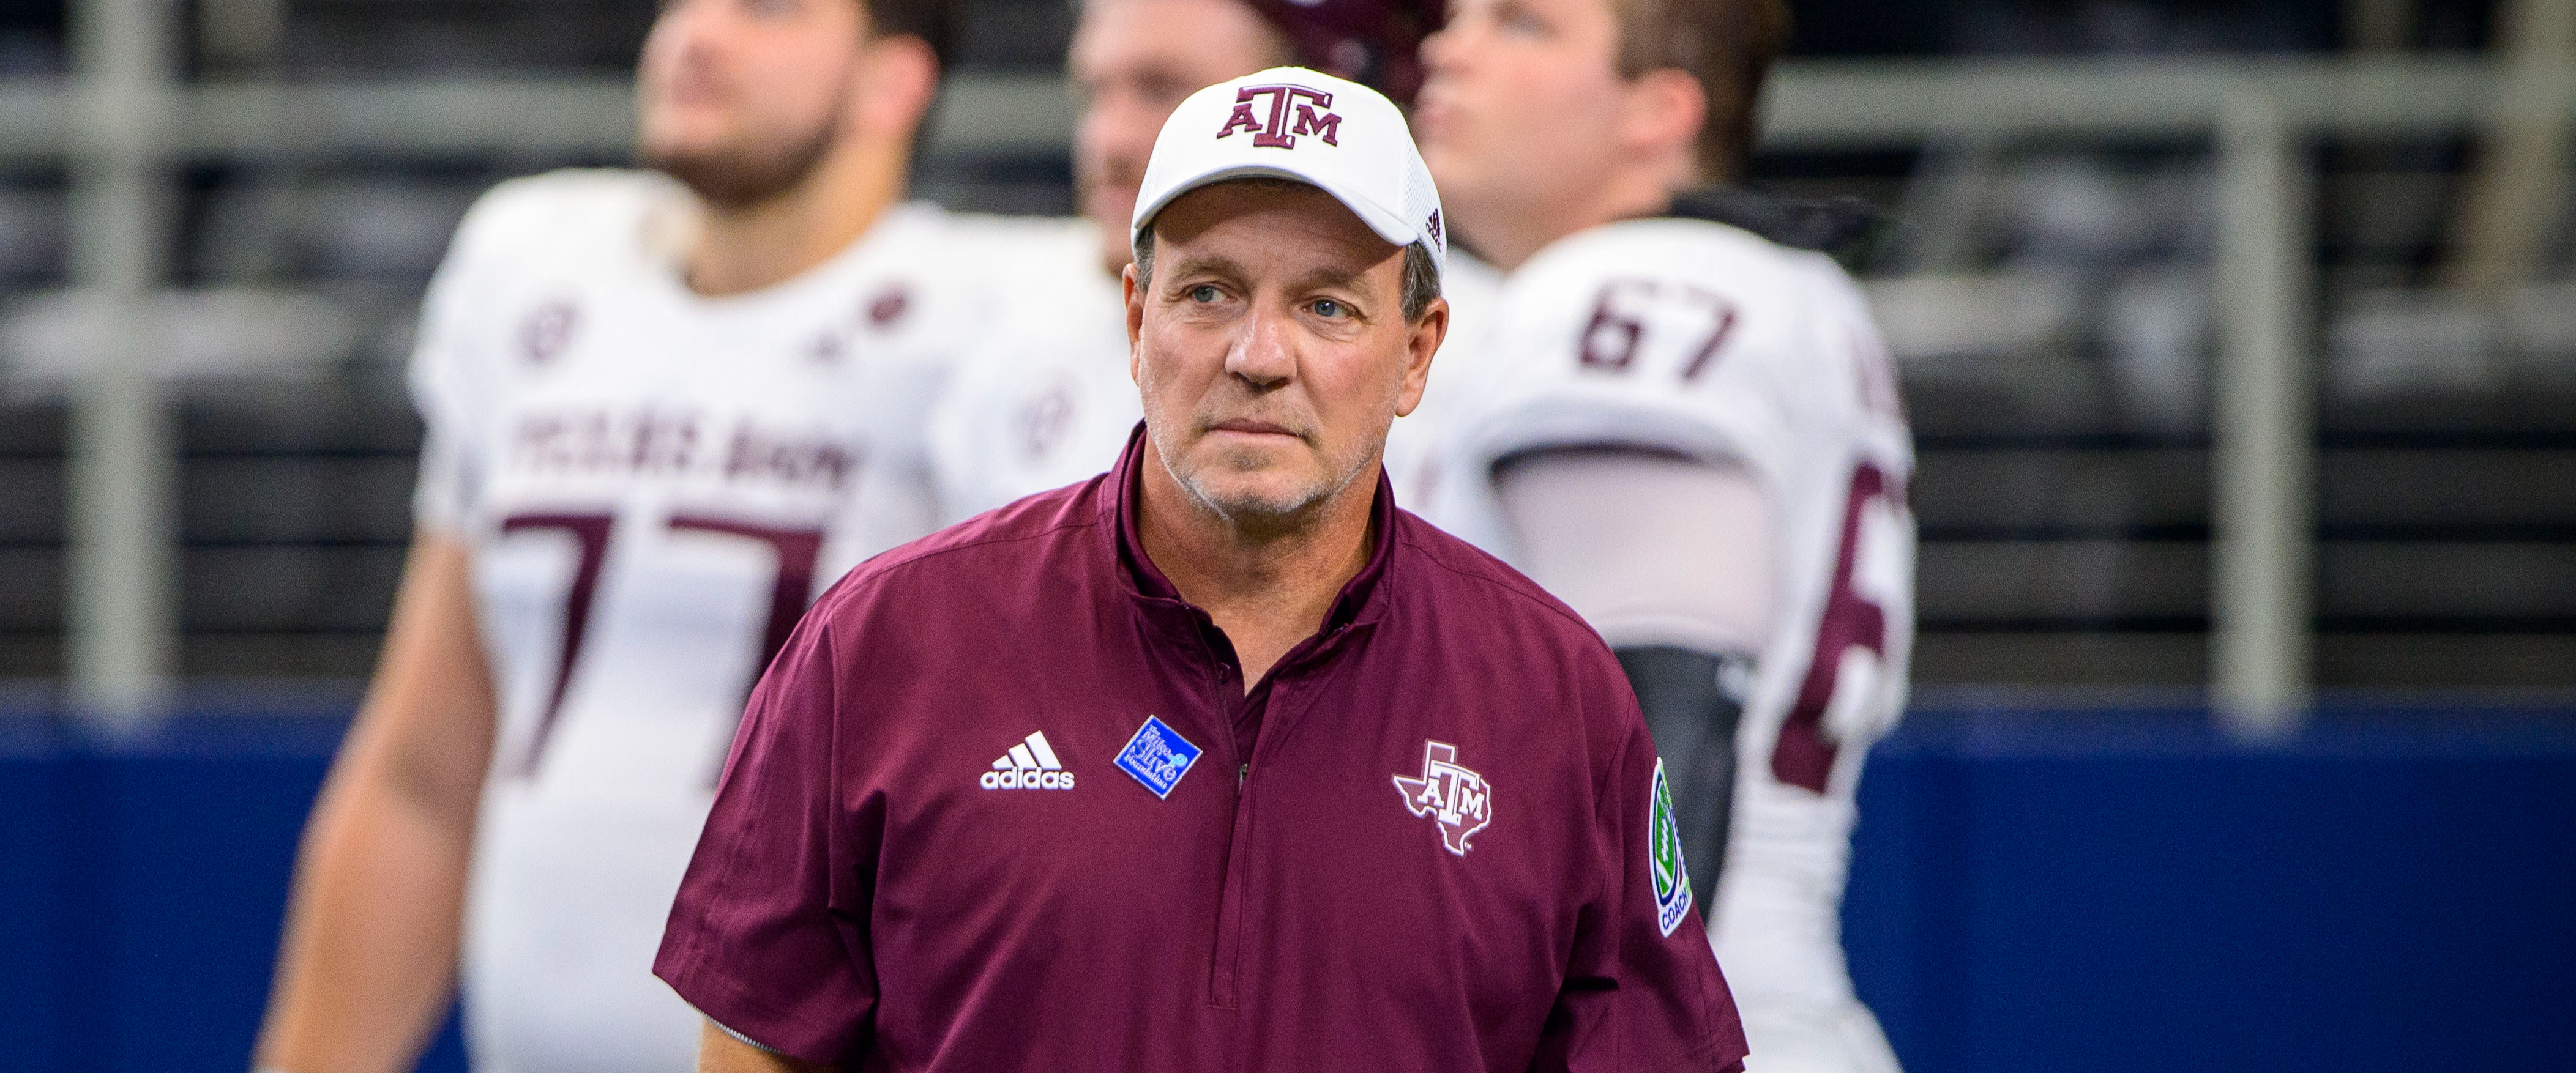 Overpaying and underperforming - Texas A&M needs answers